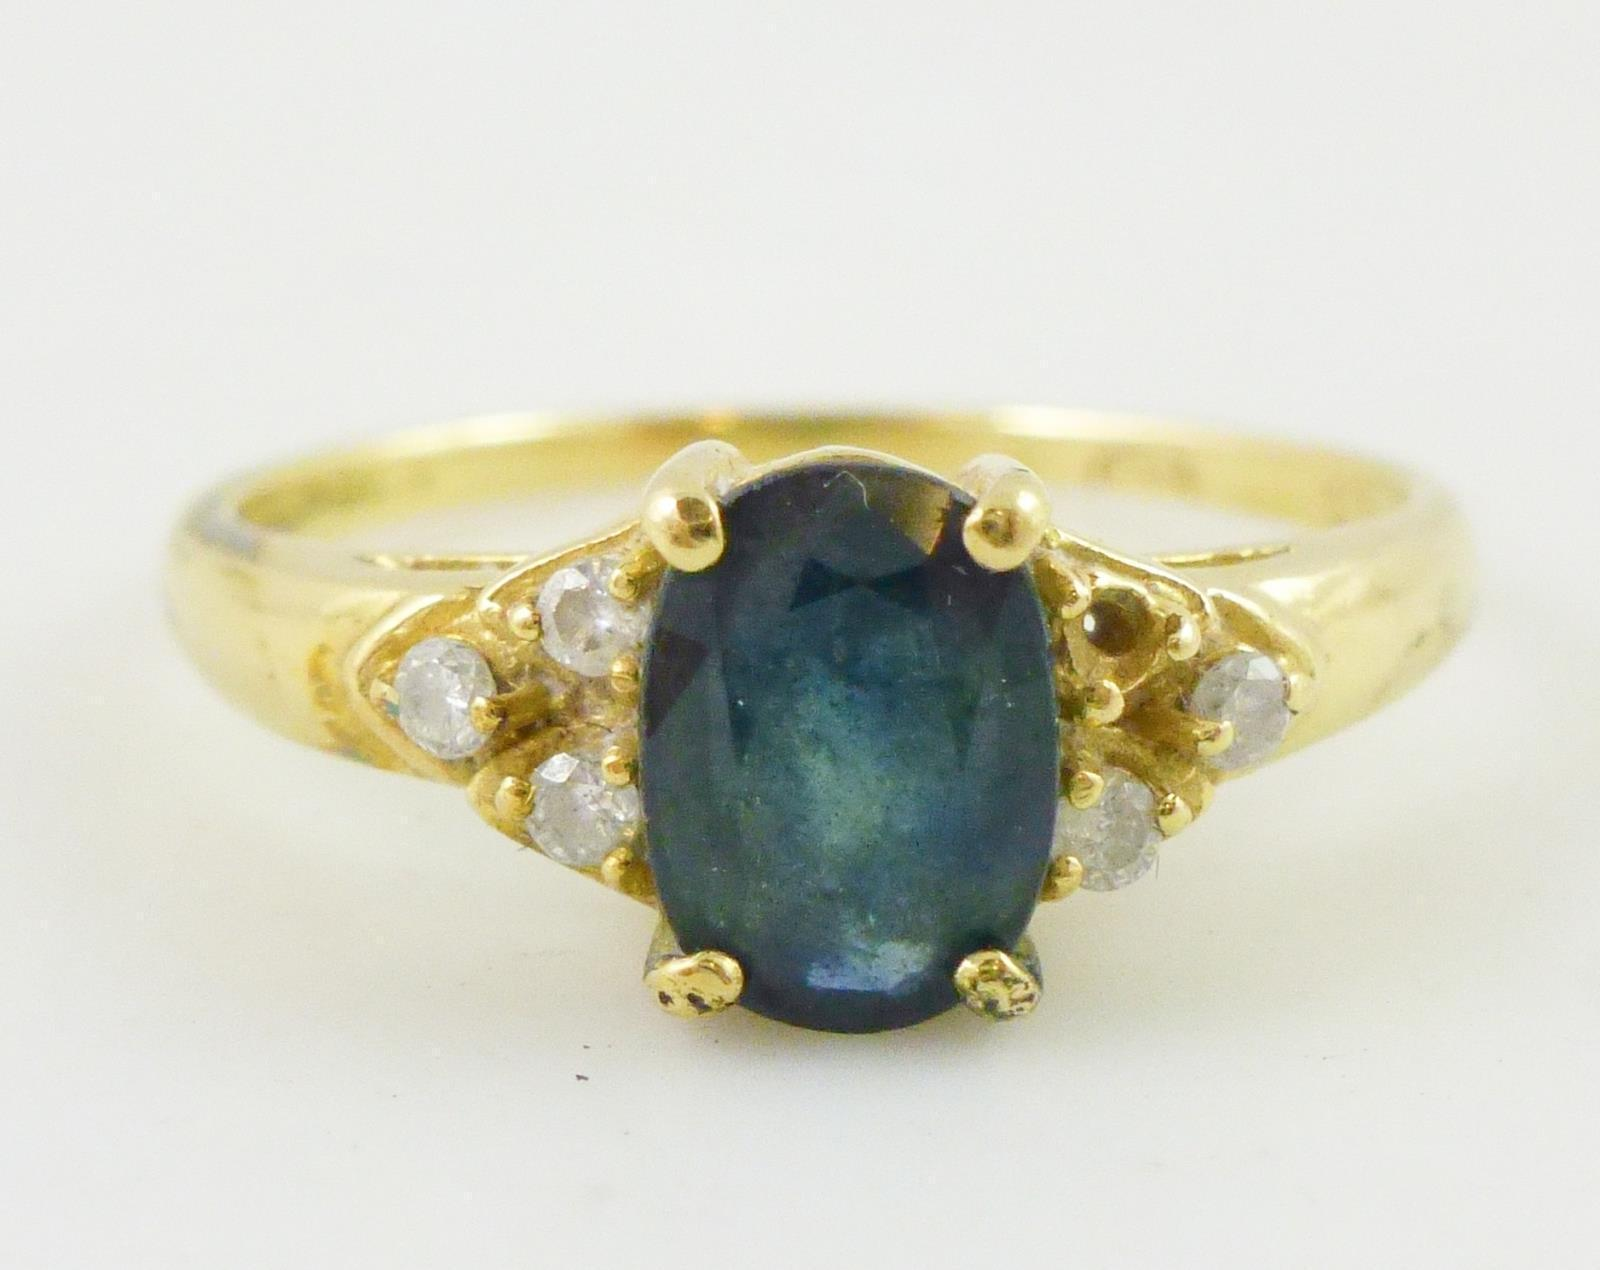 14K Yellow GOLD Blue Oval-cut SAPPHIRE and MOISSANITE Accent RING - Size 6.25